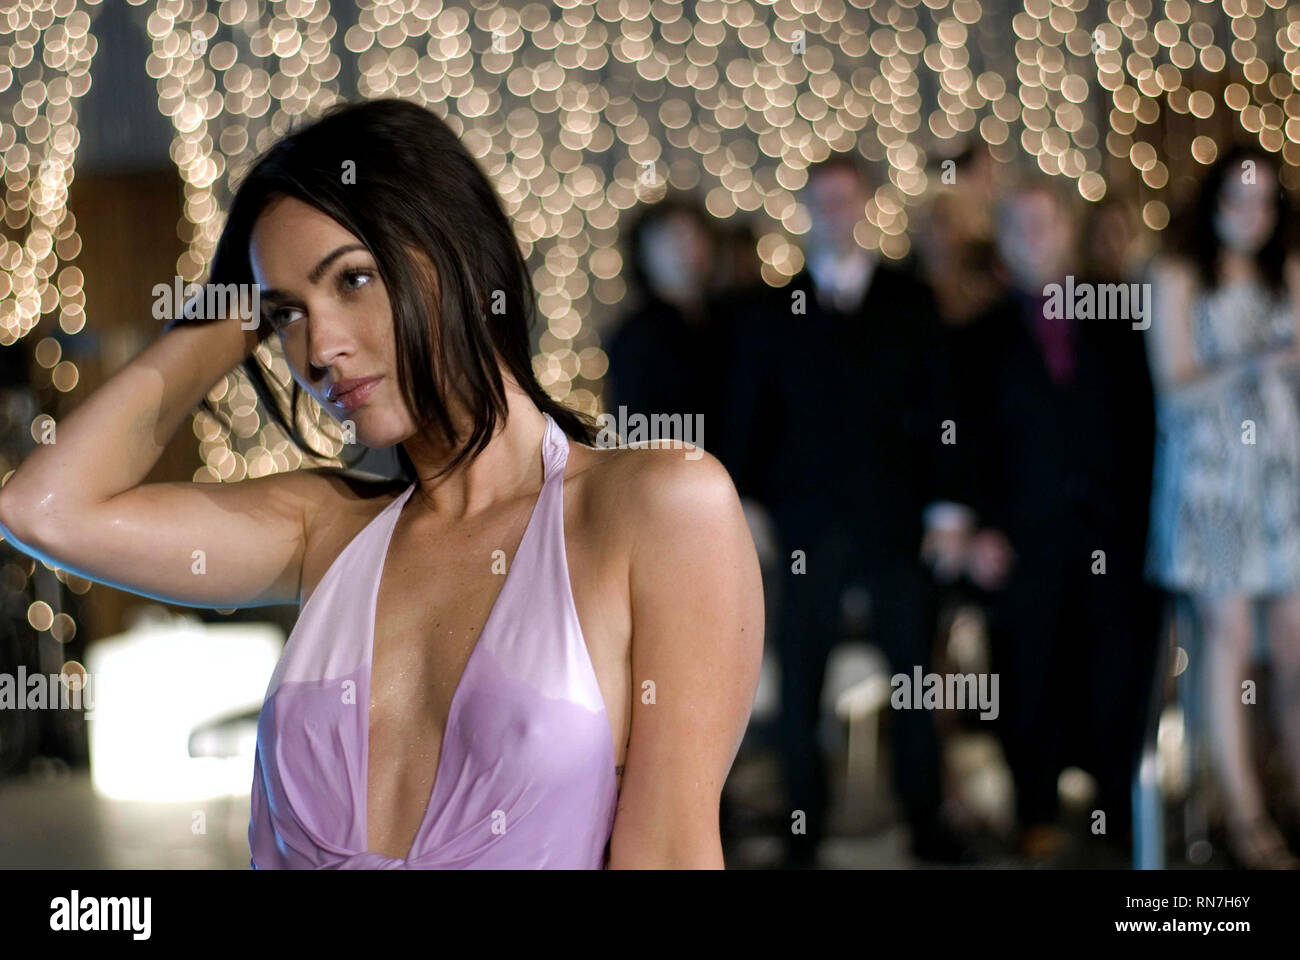 MEGAN FOX, HOW TO LOSE FRIENDS and ALIENATE PEOPLE, 2008 - Stock Image